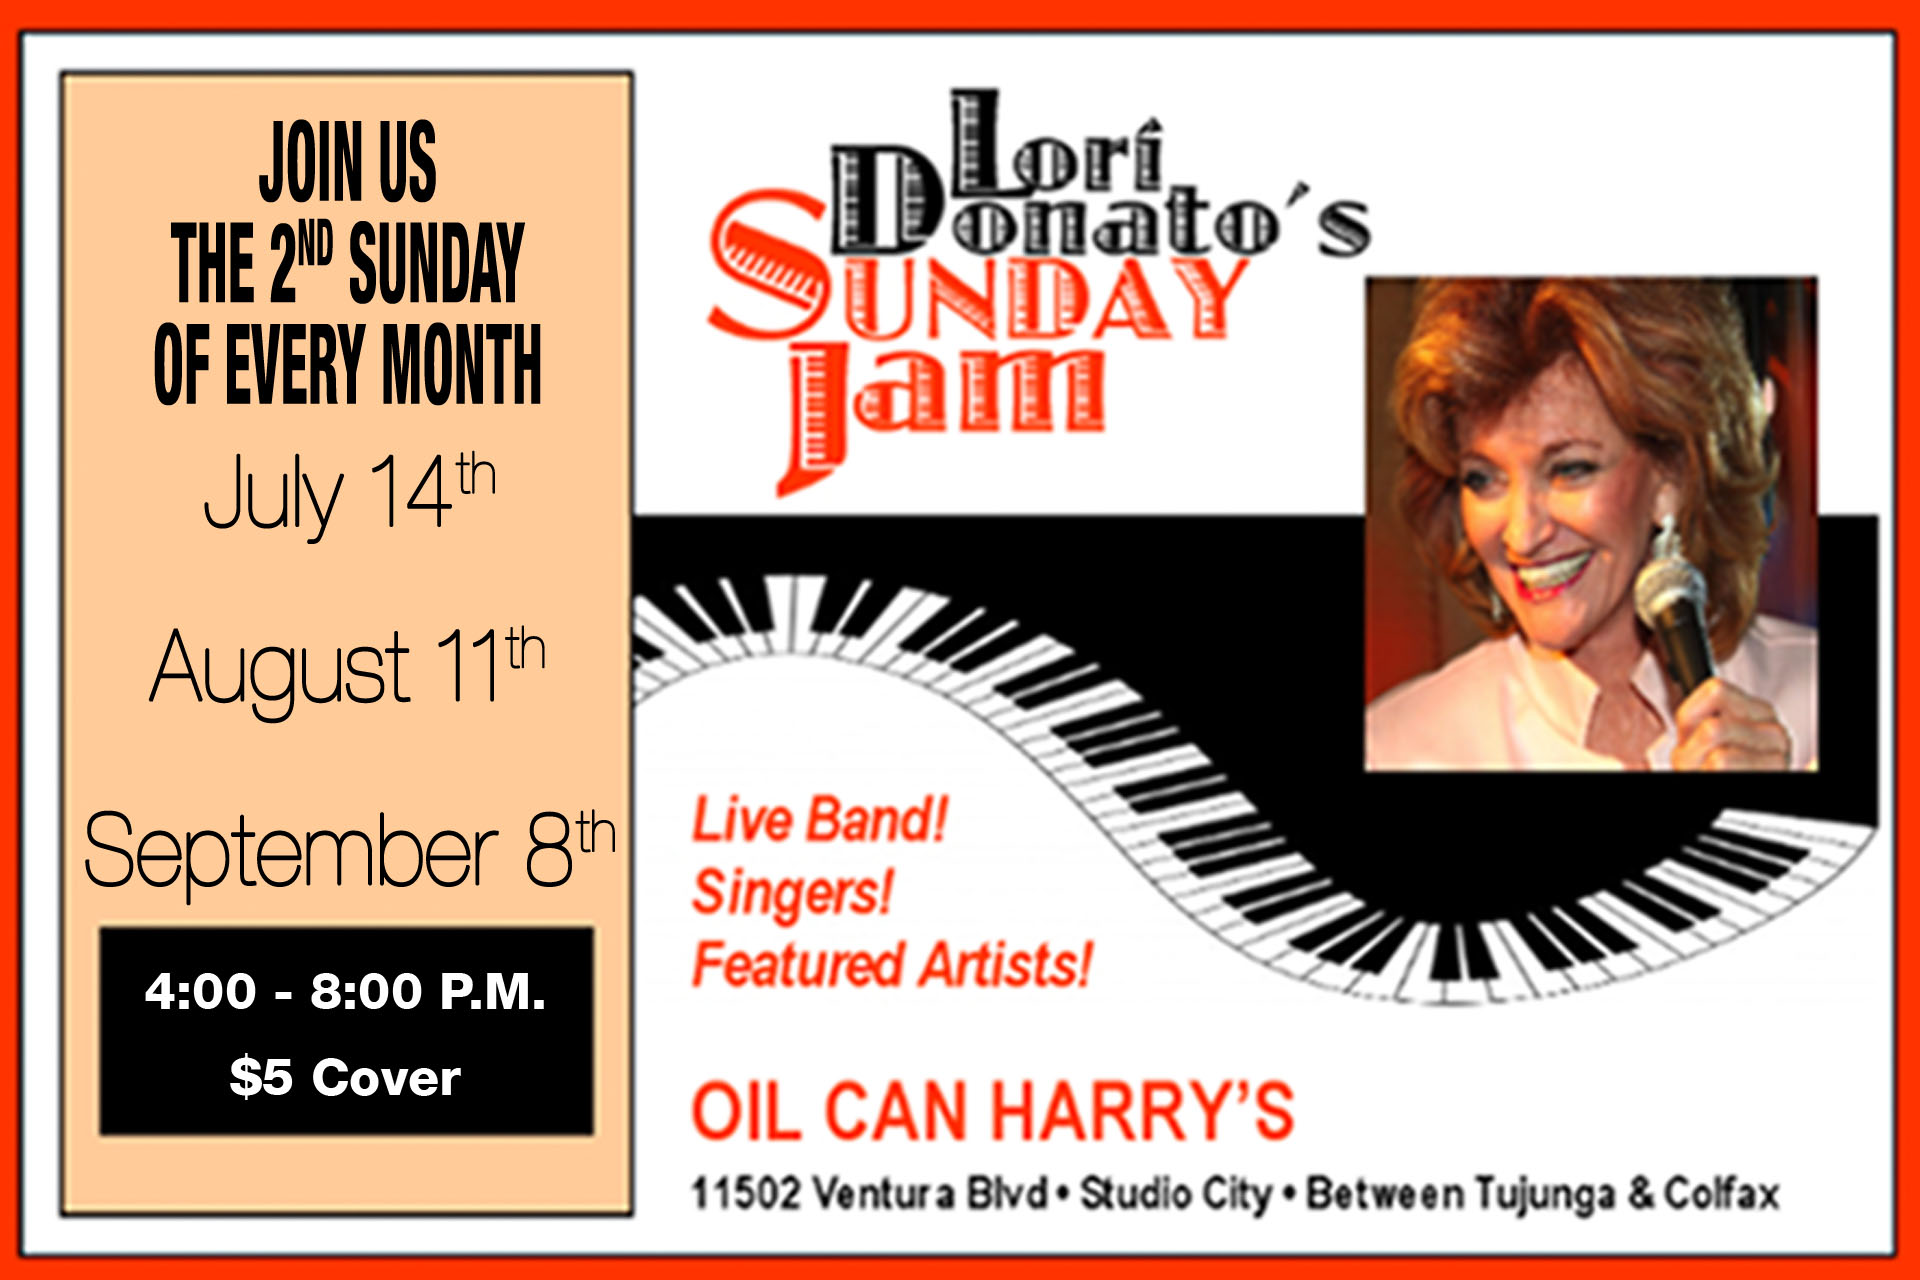 Oil Can Harry's Presents Lori Donato's Sunday Jam! Now the 2nd Sunday of every month! July 14th, August 11th & September 8th, 2019! 4:00 to 8:00 PM. $5 cover.